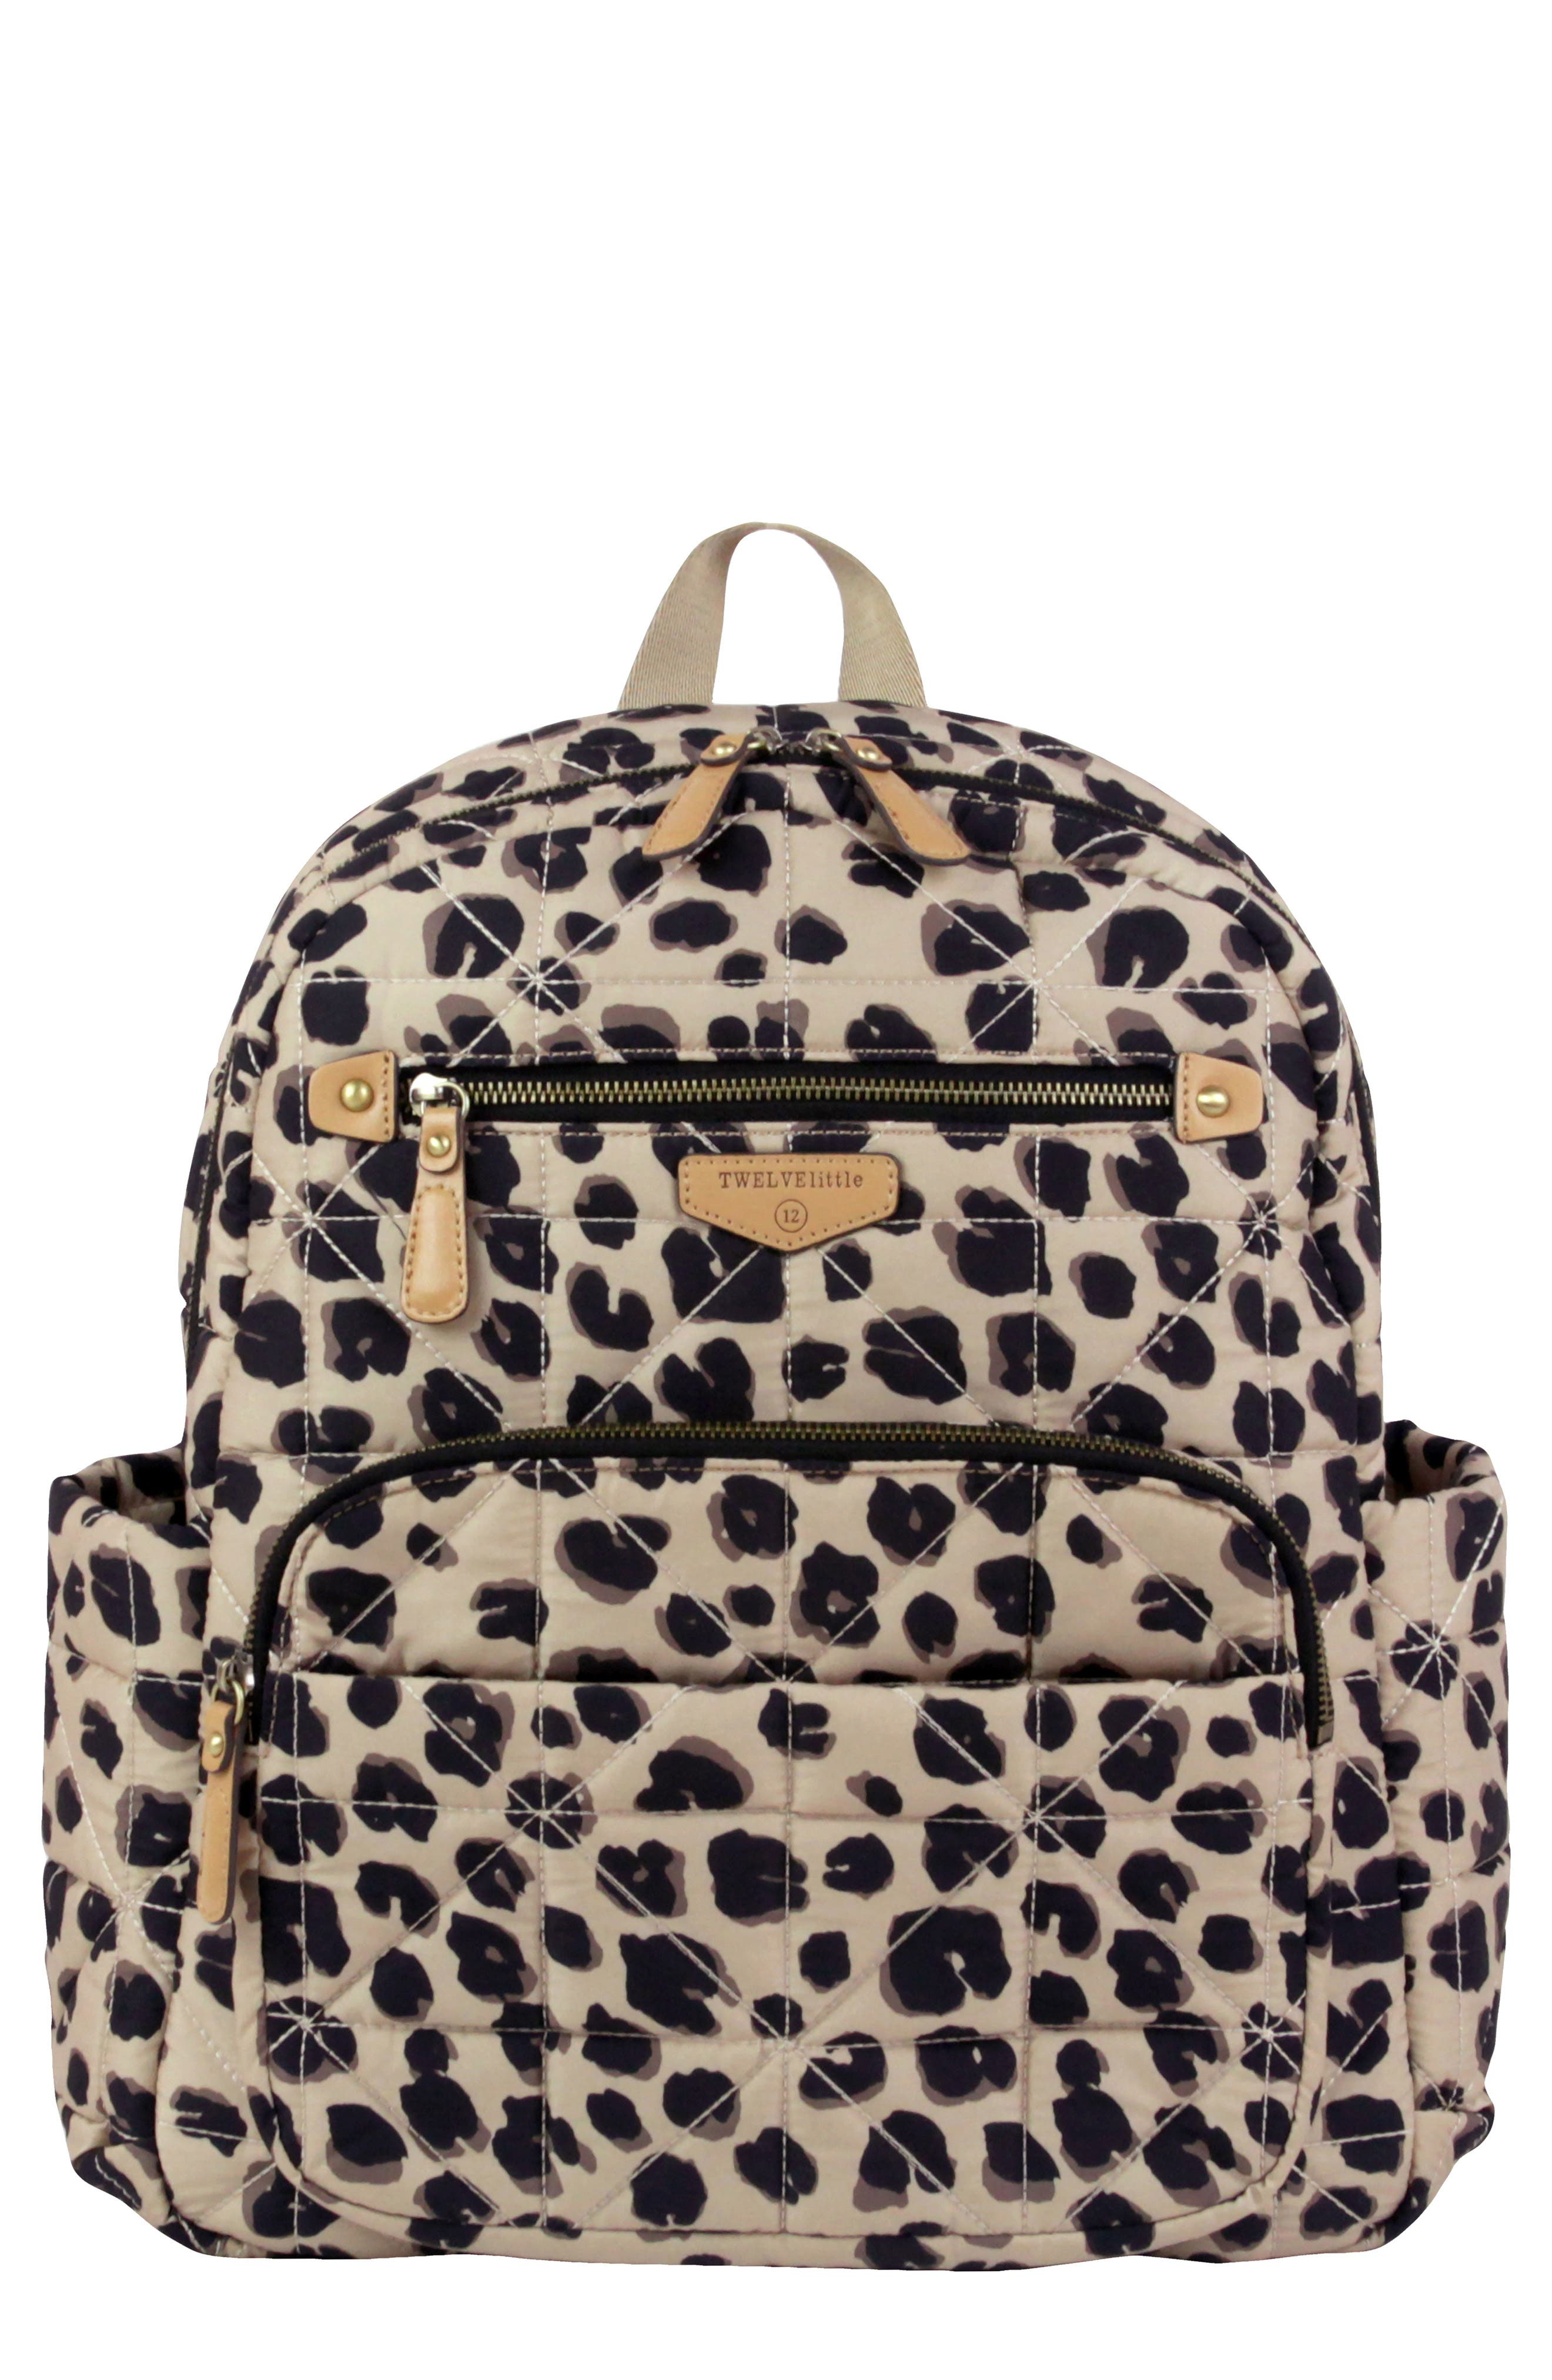 Quilted Water Resistant Nylon Diaper Backpack,                             Alternate thumbnail 2, color,                             LEOPARD PRINT